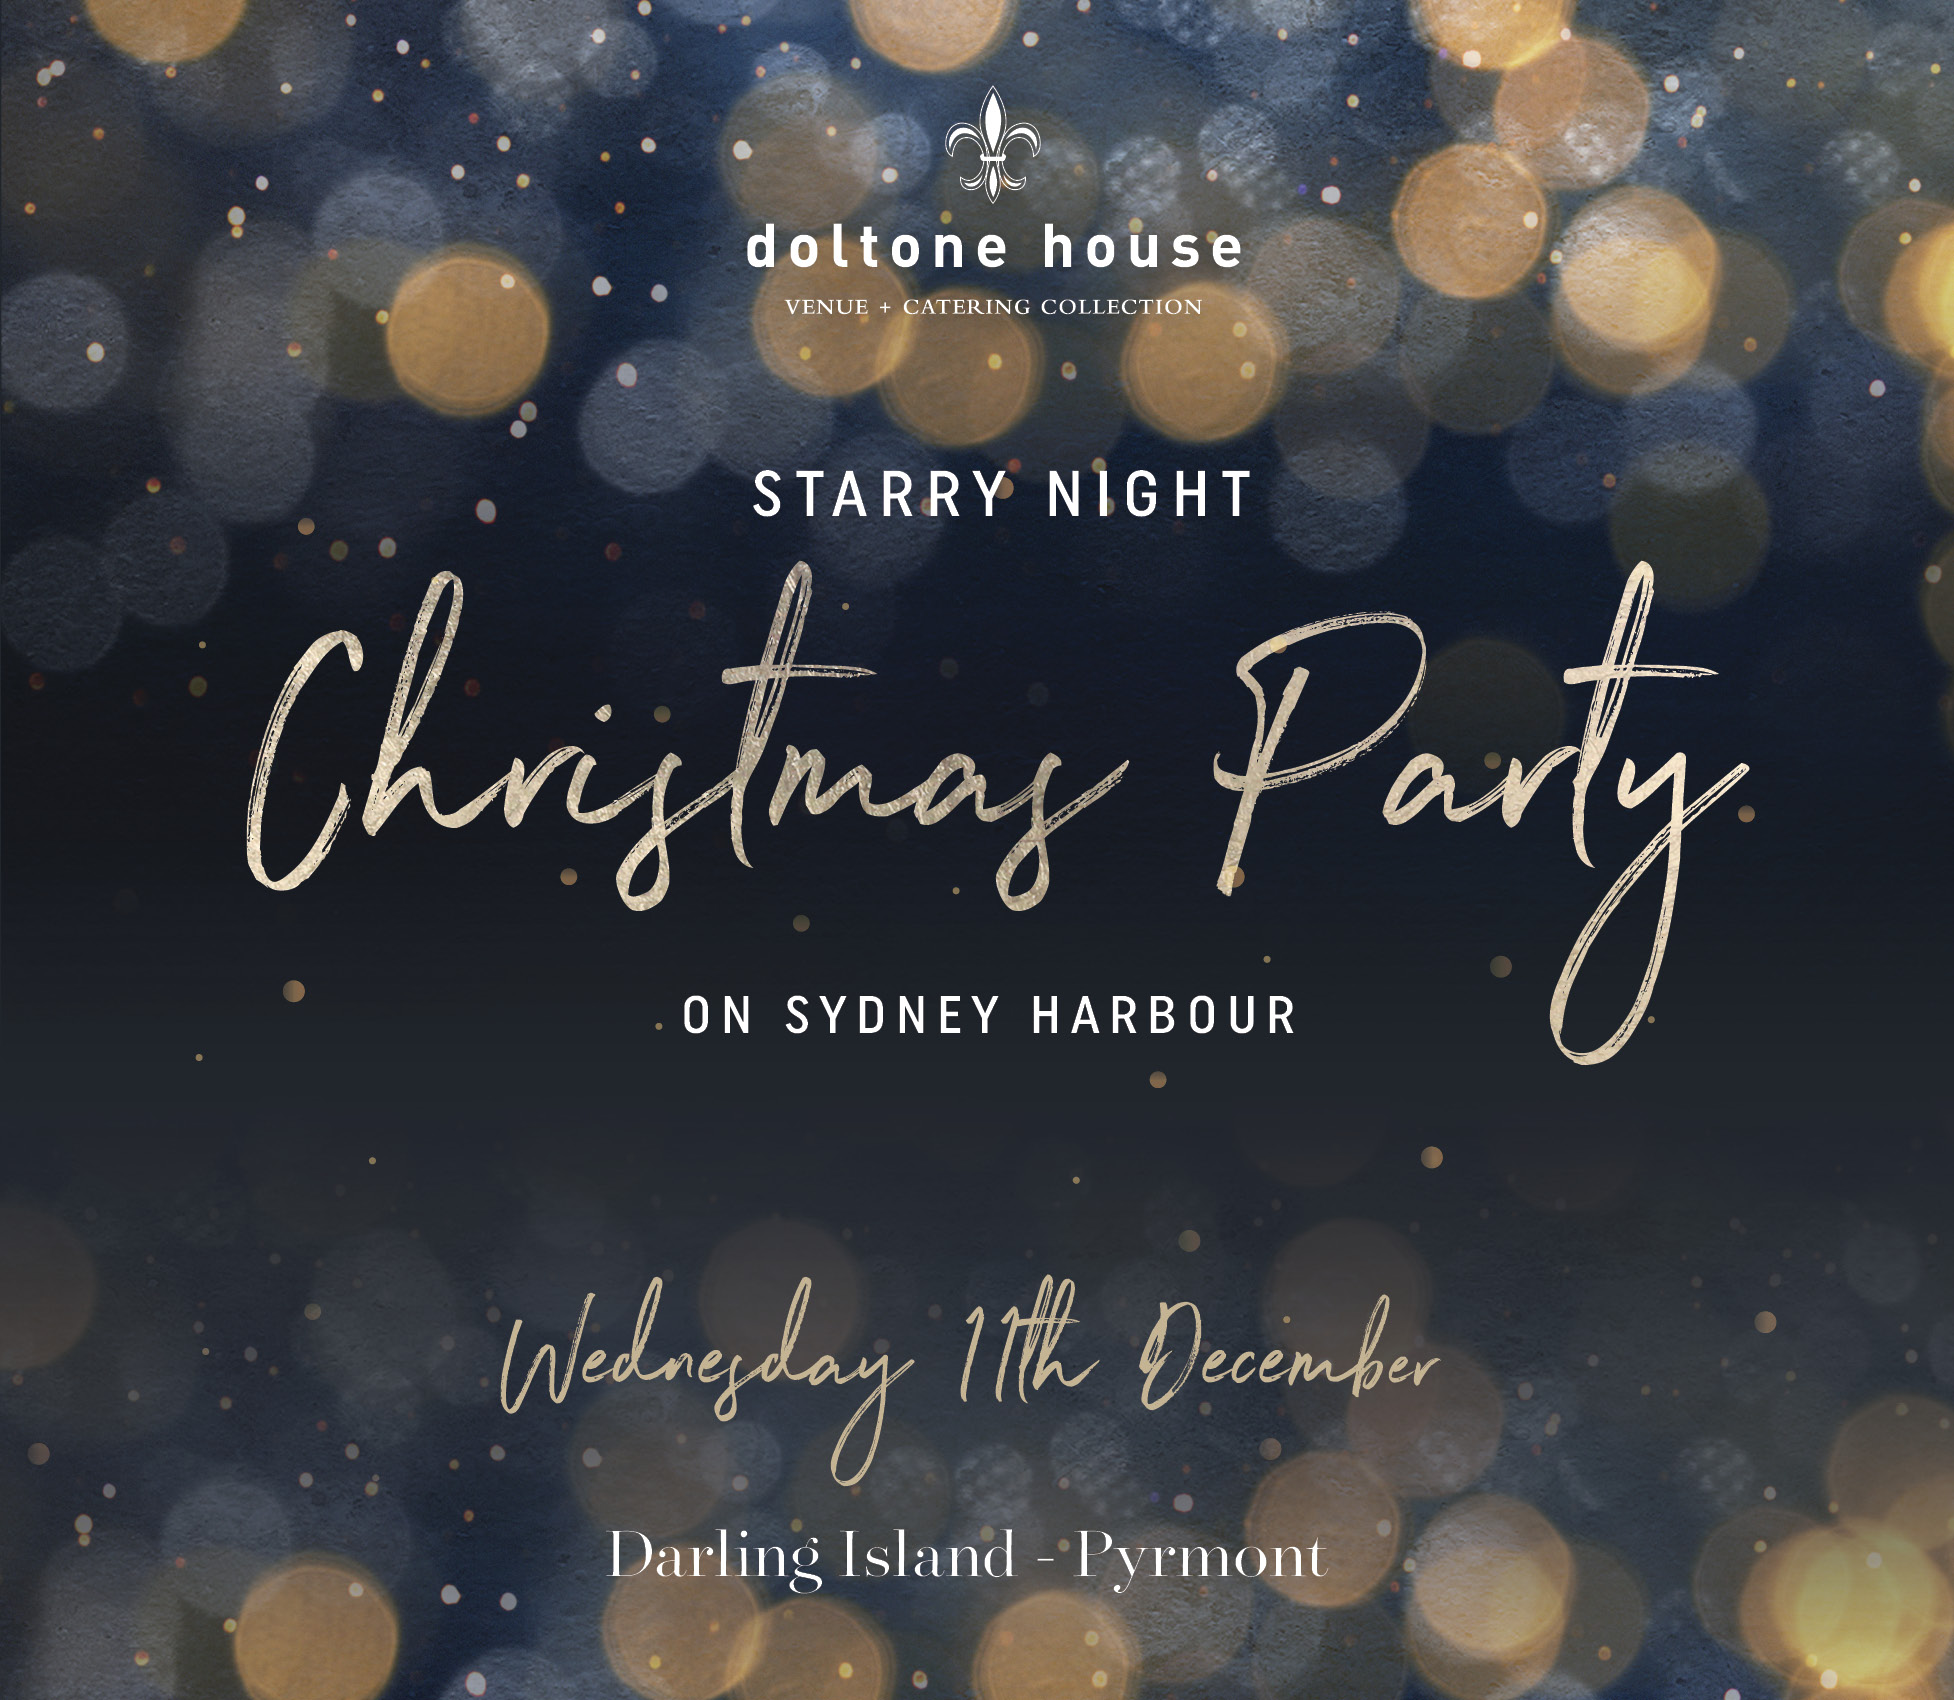 Christmas Party 2019 Logo.Christmas Party 2019 At Doltone House